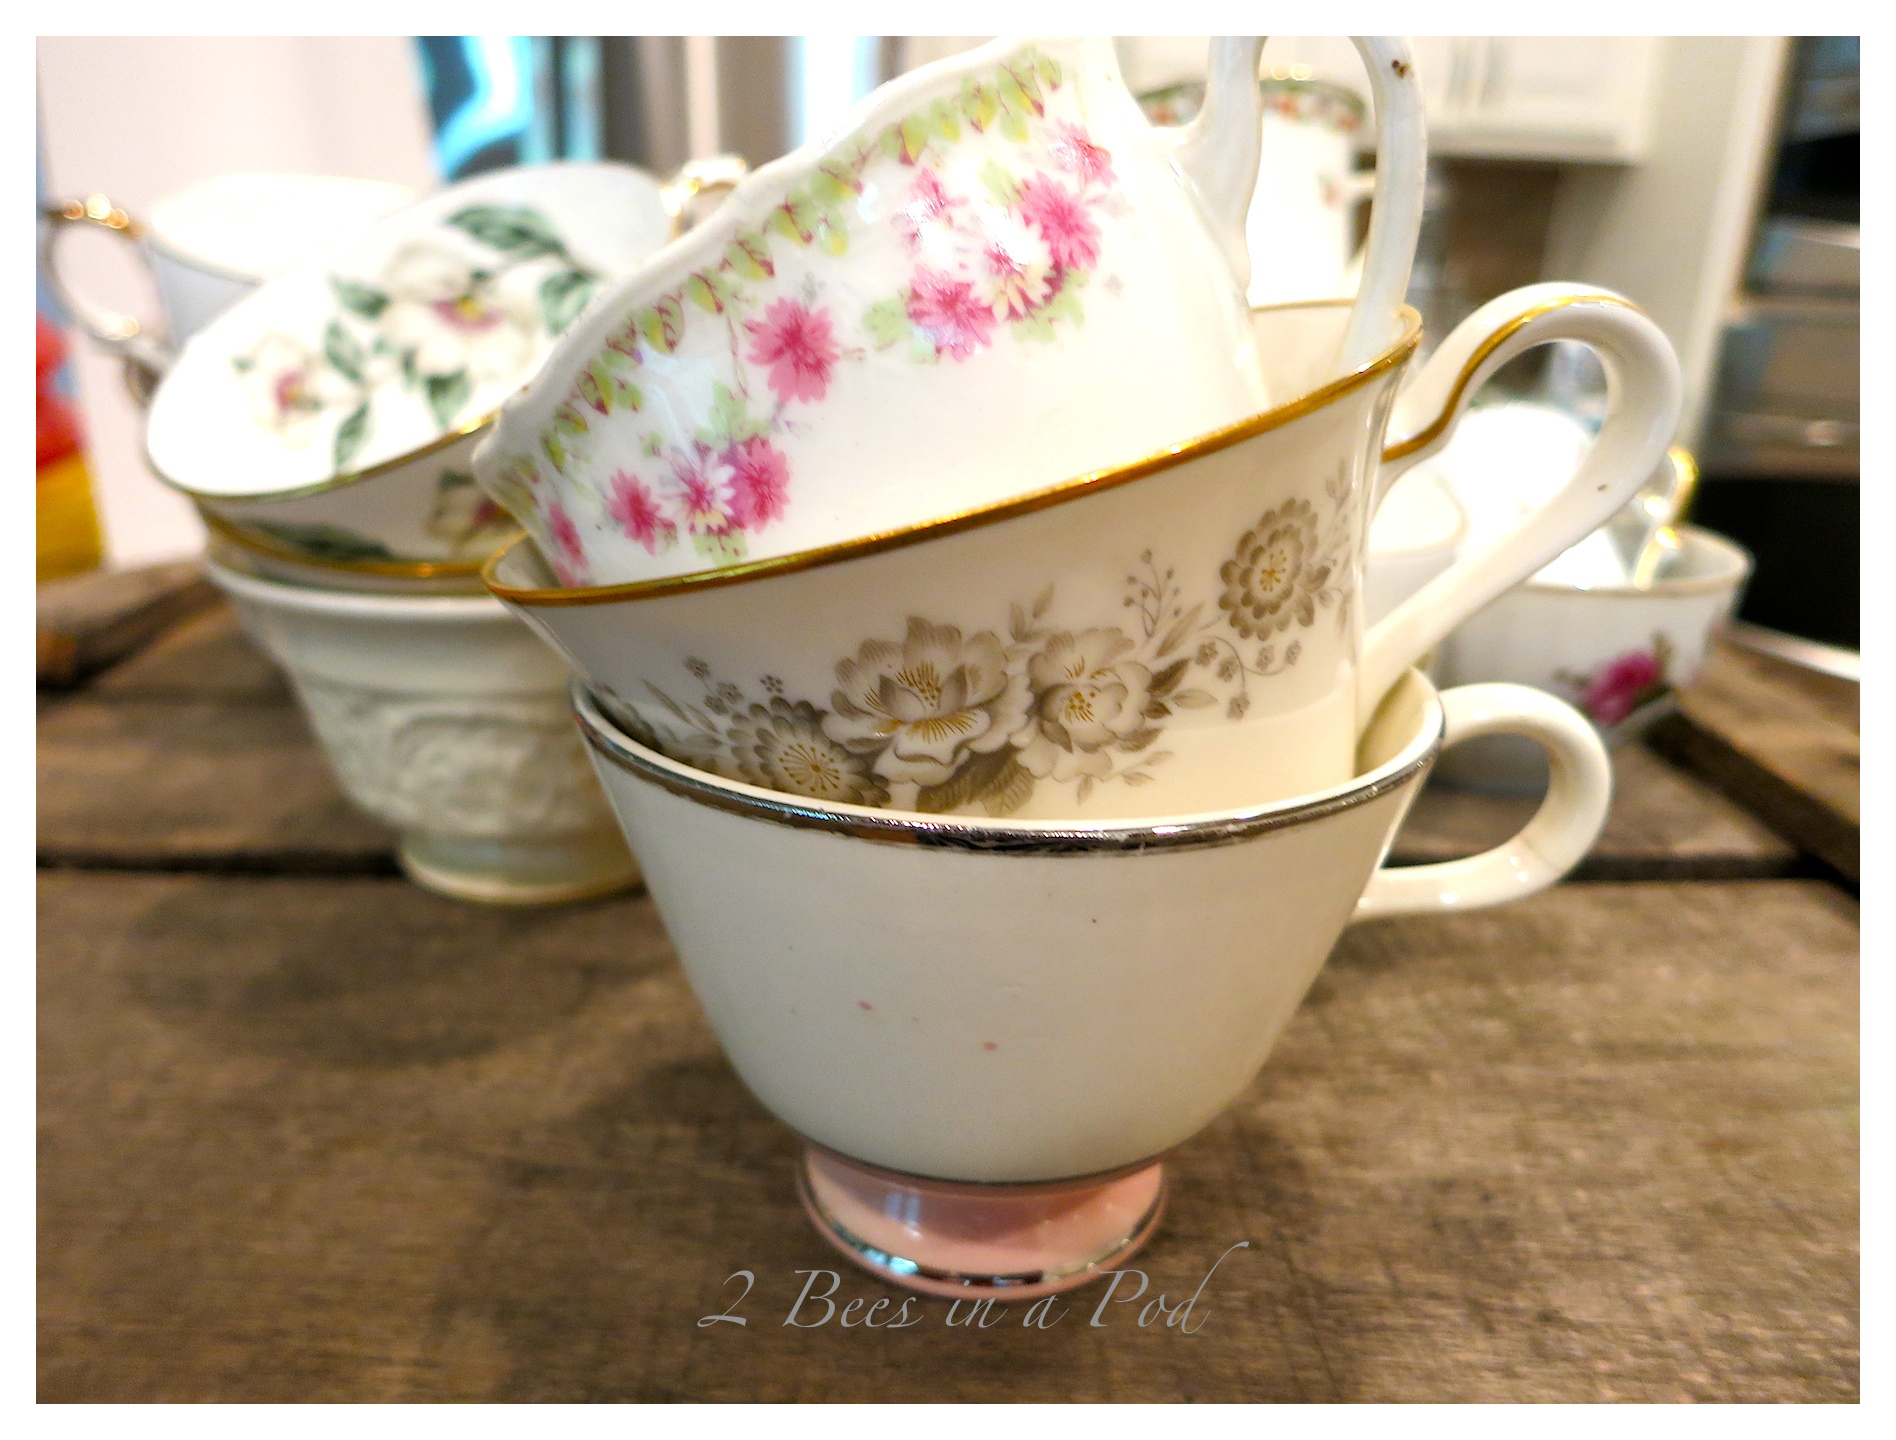 just 2 easy steps to create your own diy bridal shower party favor teacup candles